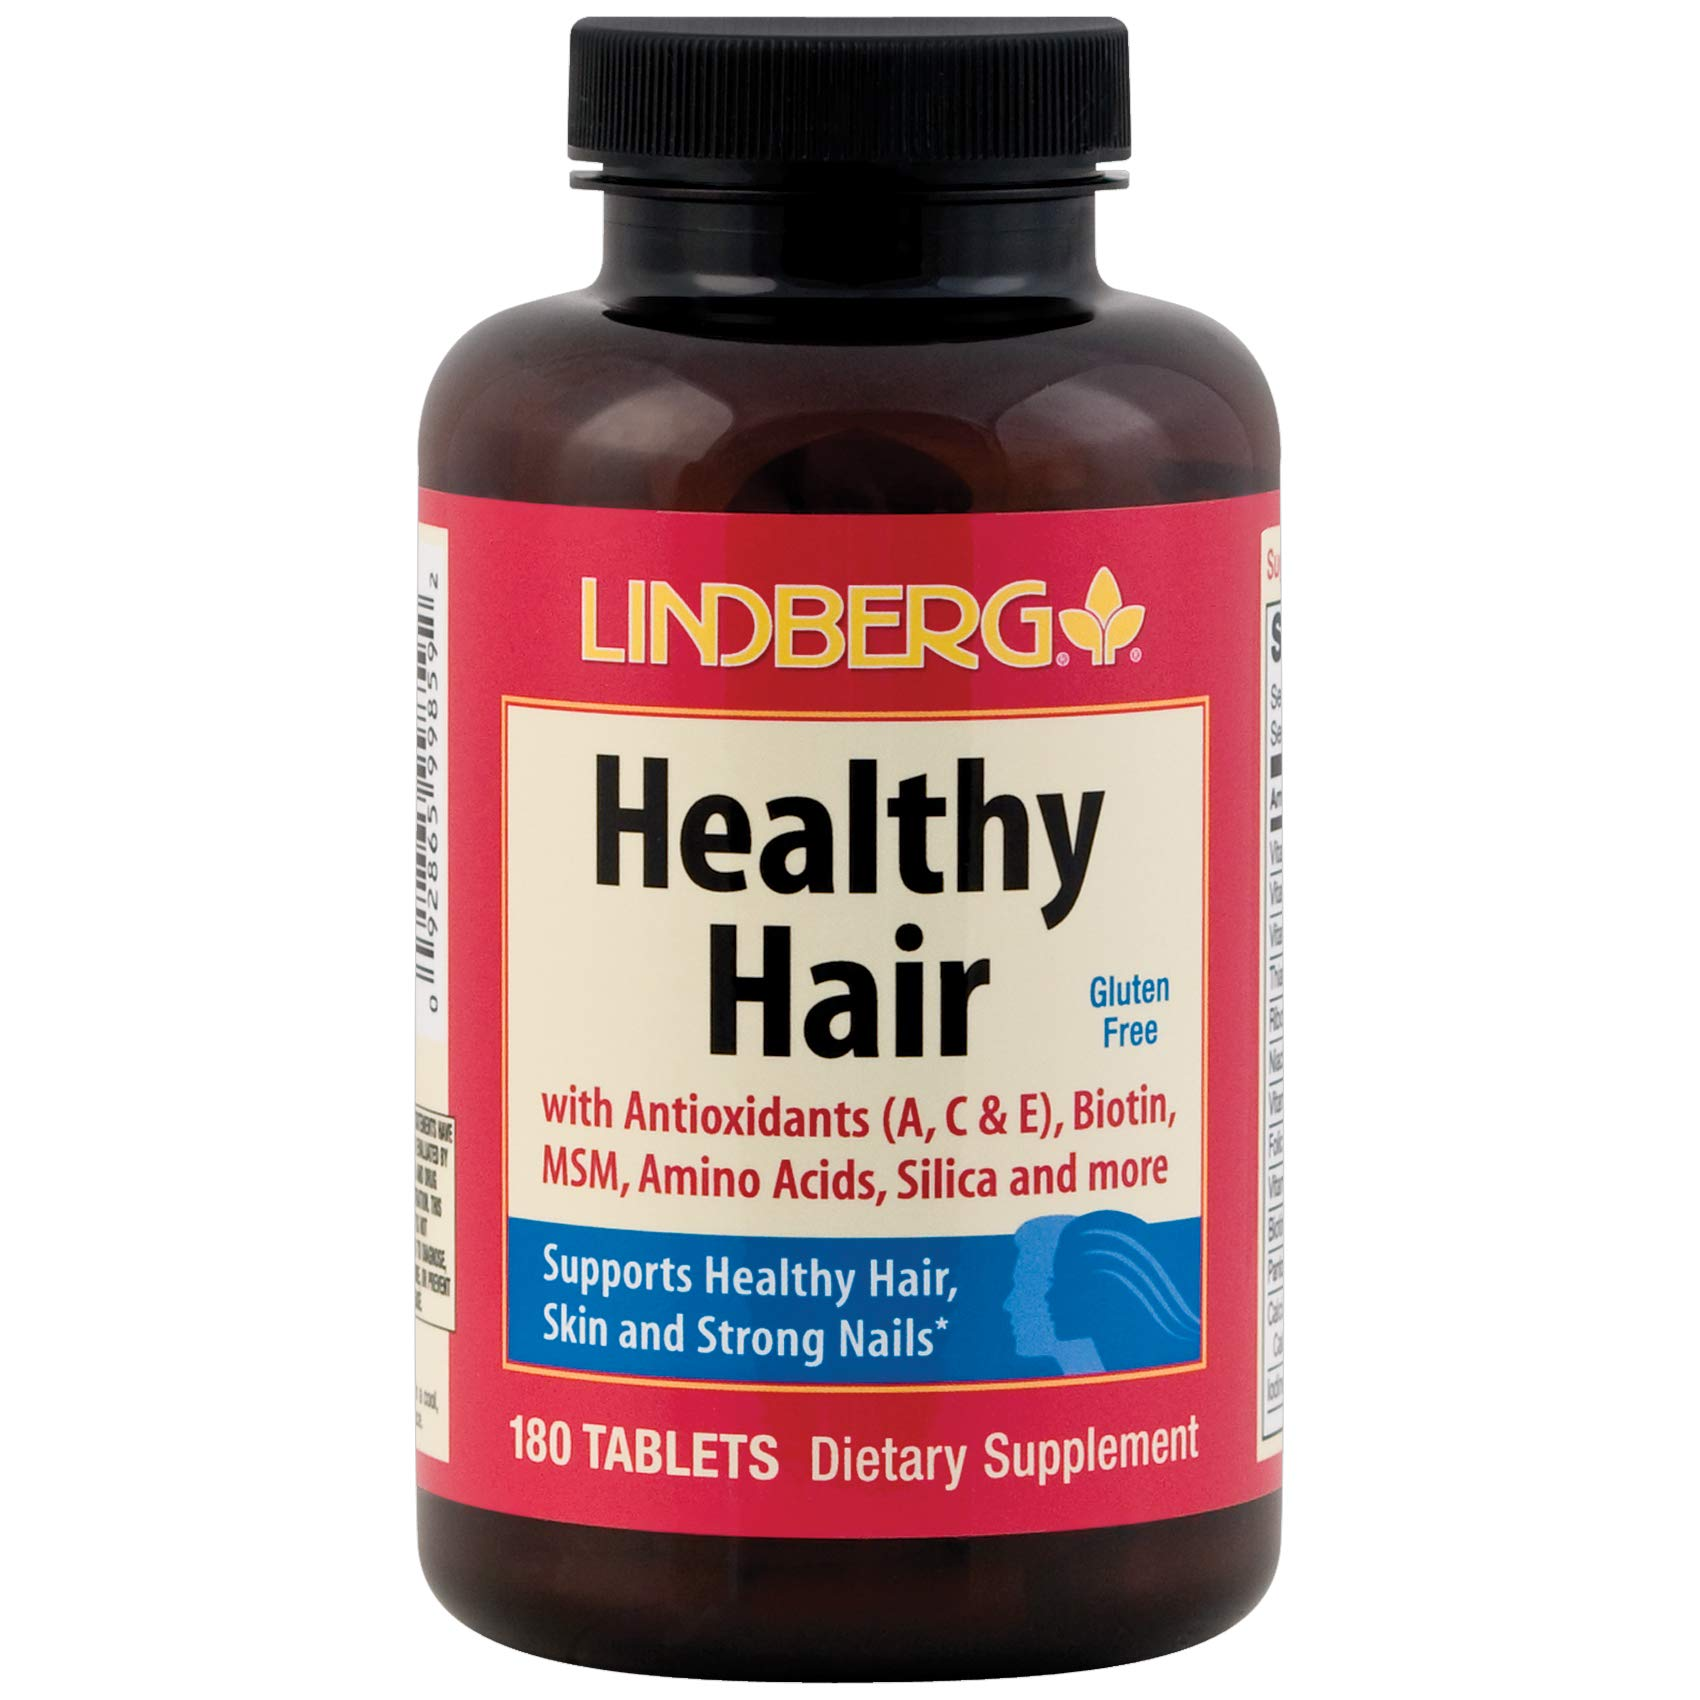 Lindberg Healthy Hair - with Antioxidants, Biotin, MSM, Amino Acids, Silica and More (180 Tablets)